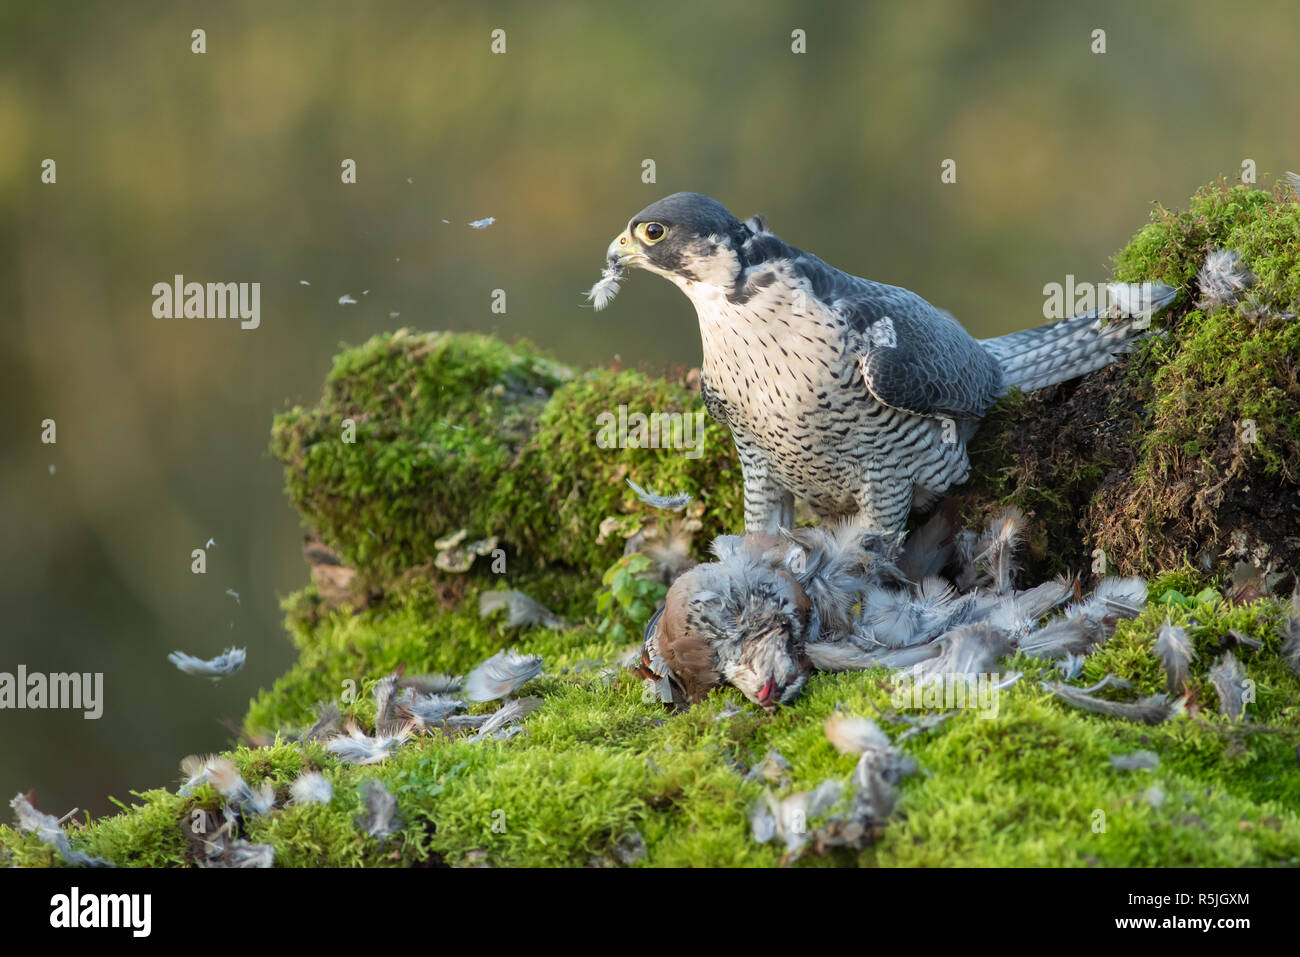 A peregrine falcon with its prey. The image shows the bird looking to the right over a dead partridge it has been plucking and eating Stock Photo